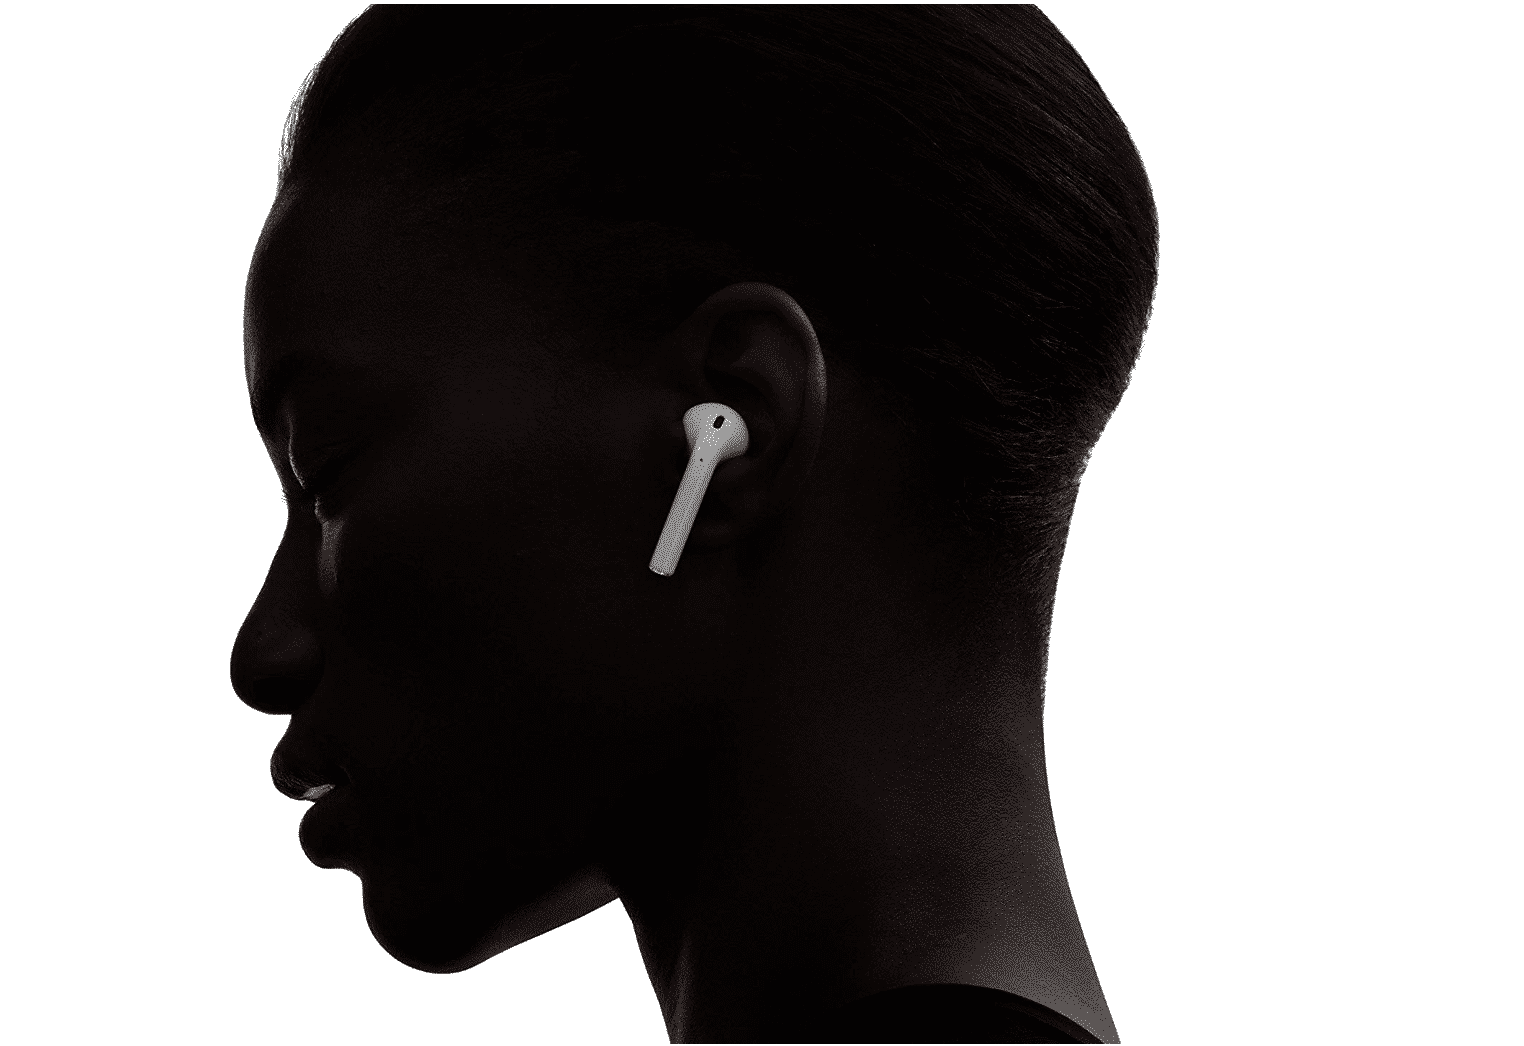 Apple AirPods 2 Drops To Lowest Price Ever